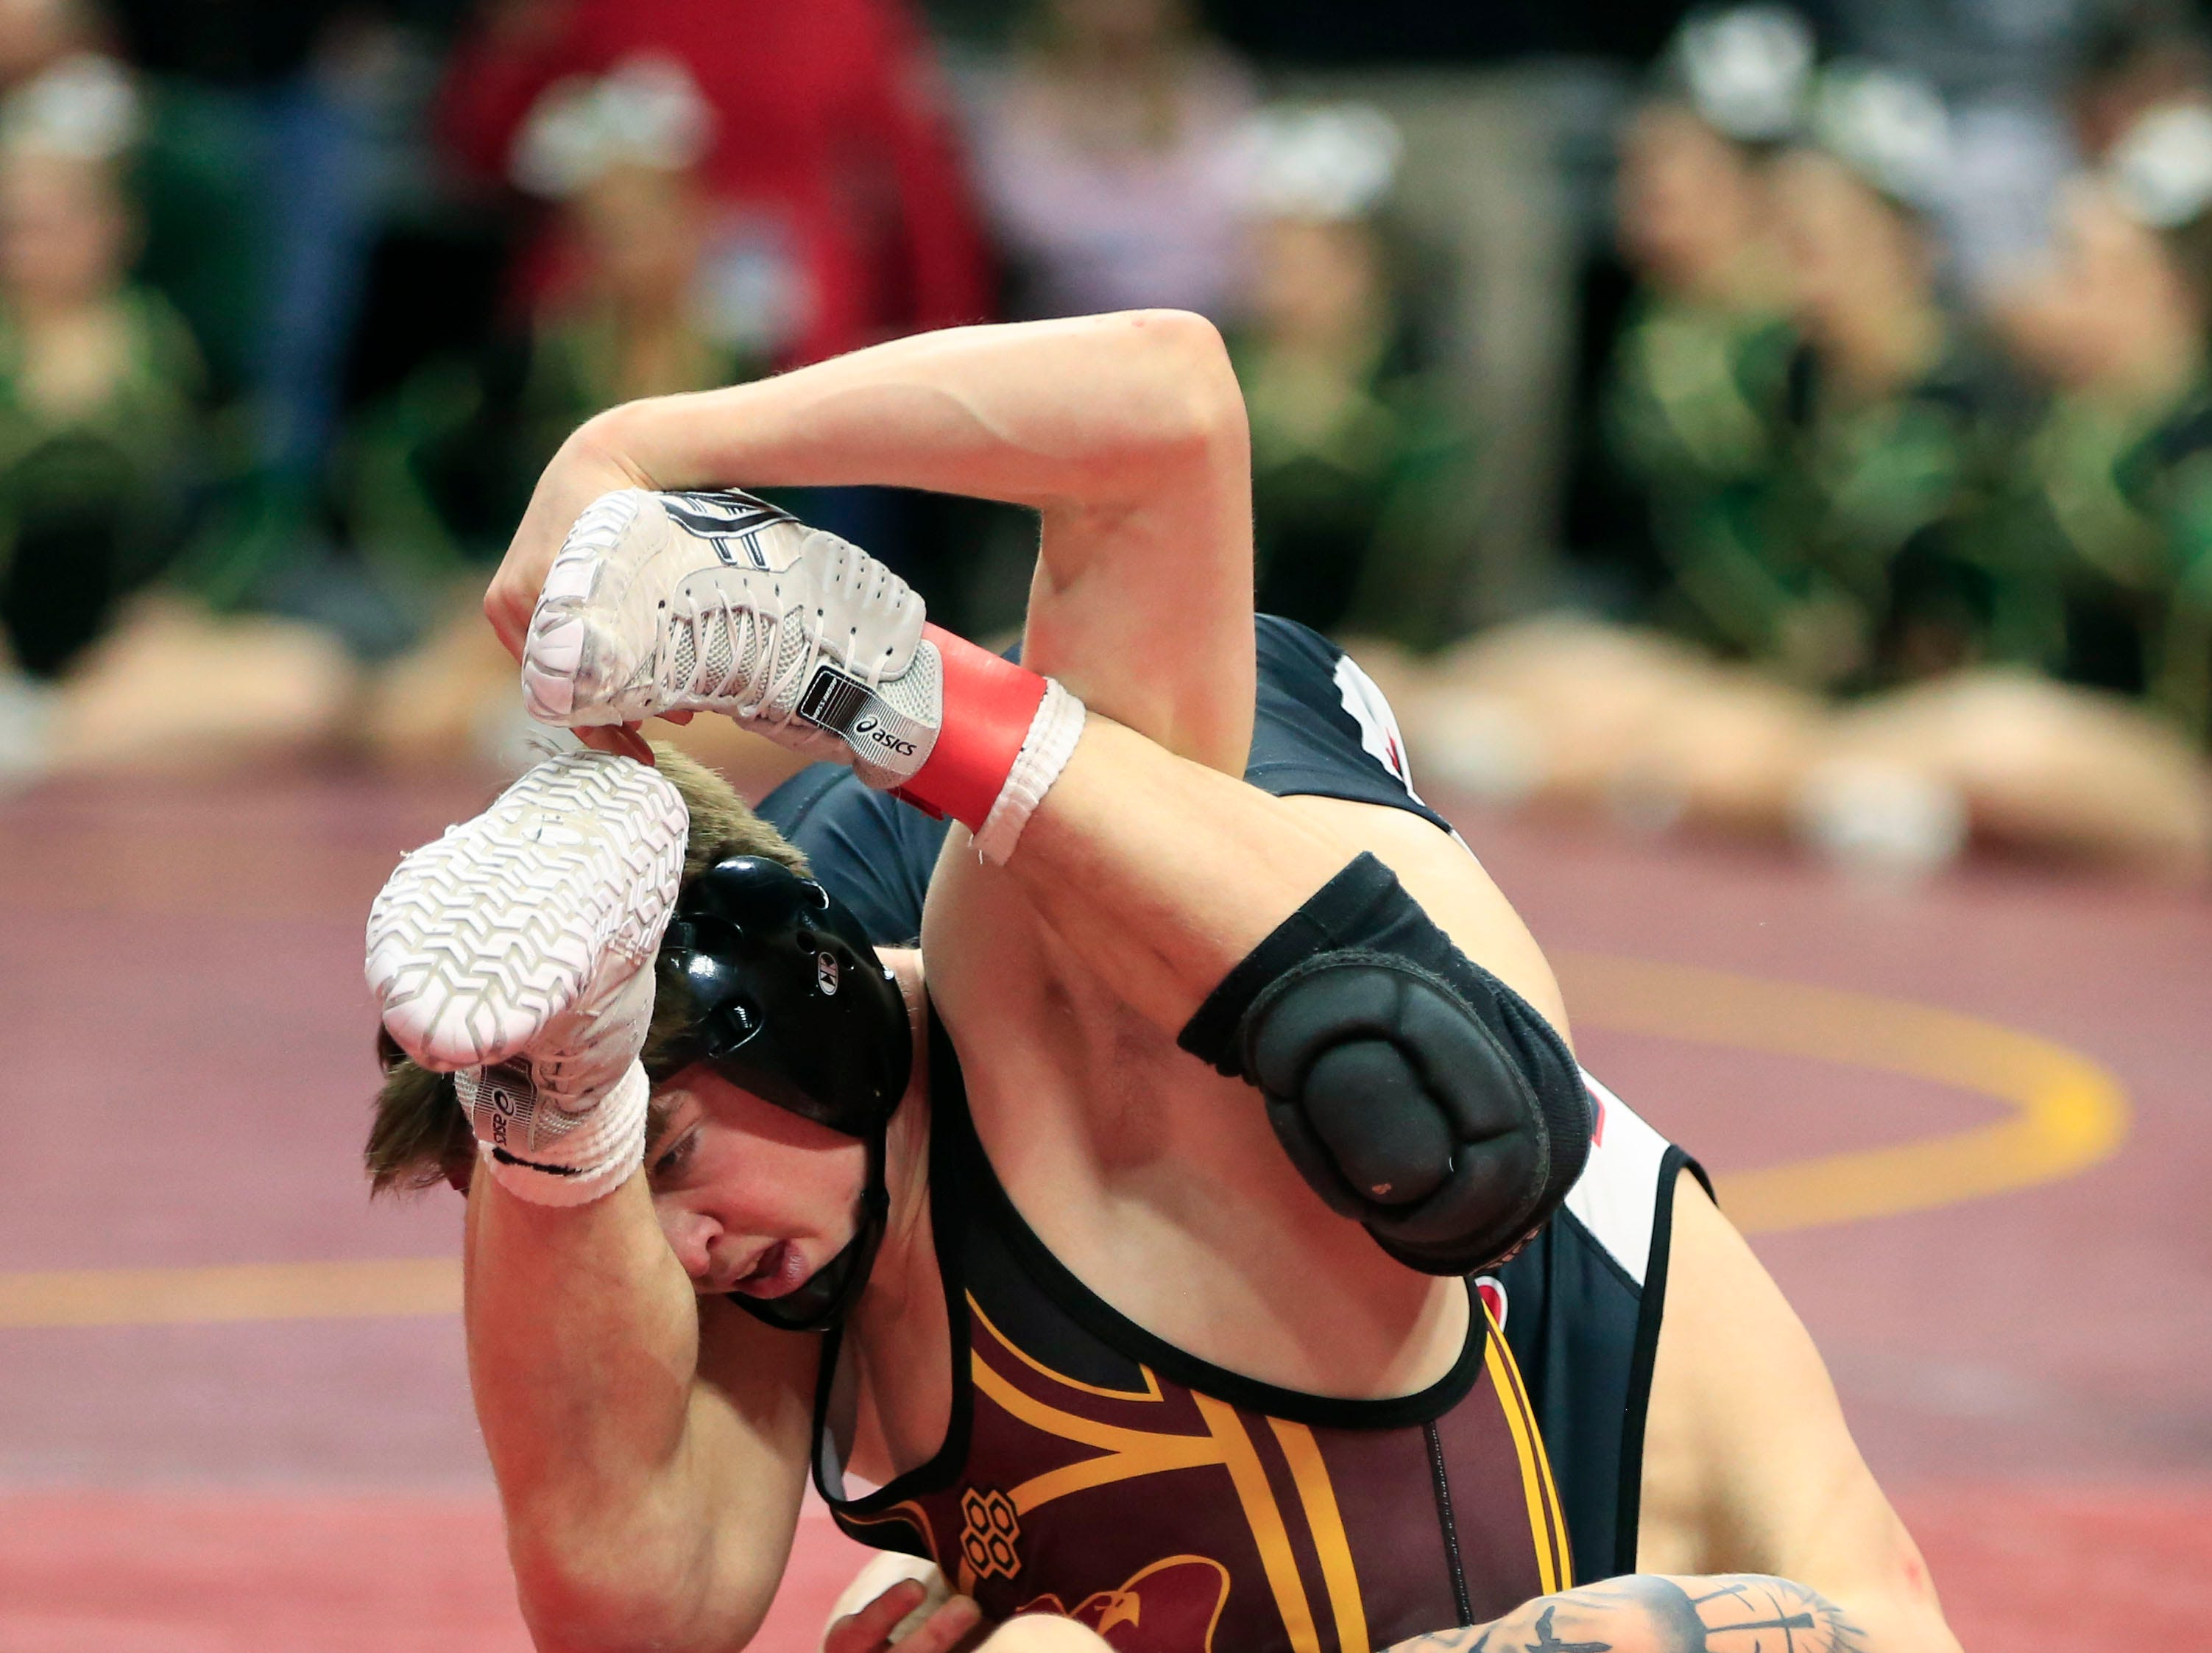 Caleb Rathjen of Ankeny defeats Matthew Jordan of Des Moines East during a 126 Lb 3A semifinal match at the state wrestling tournament Friday, Feb. 15, 2019.